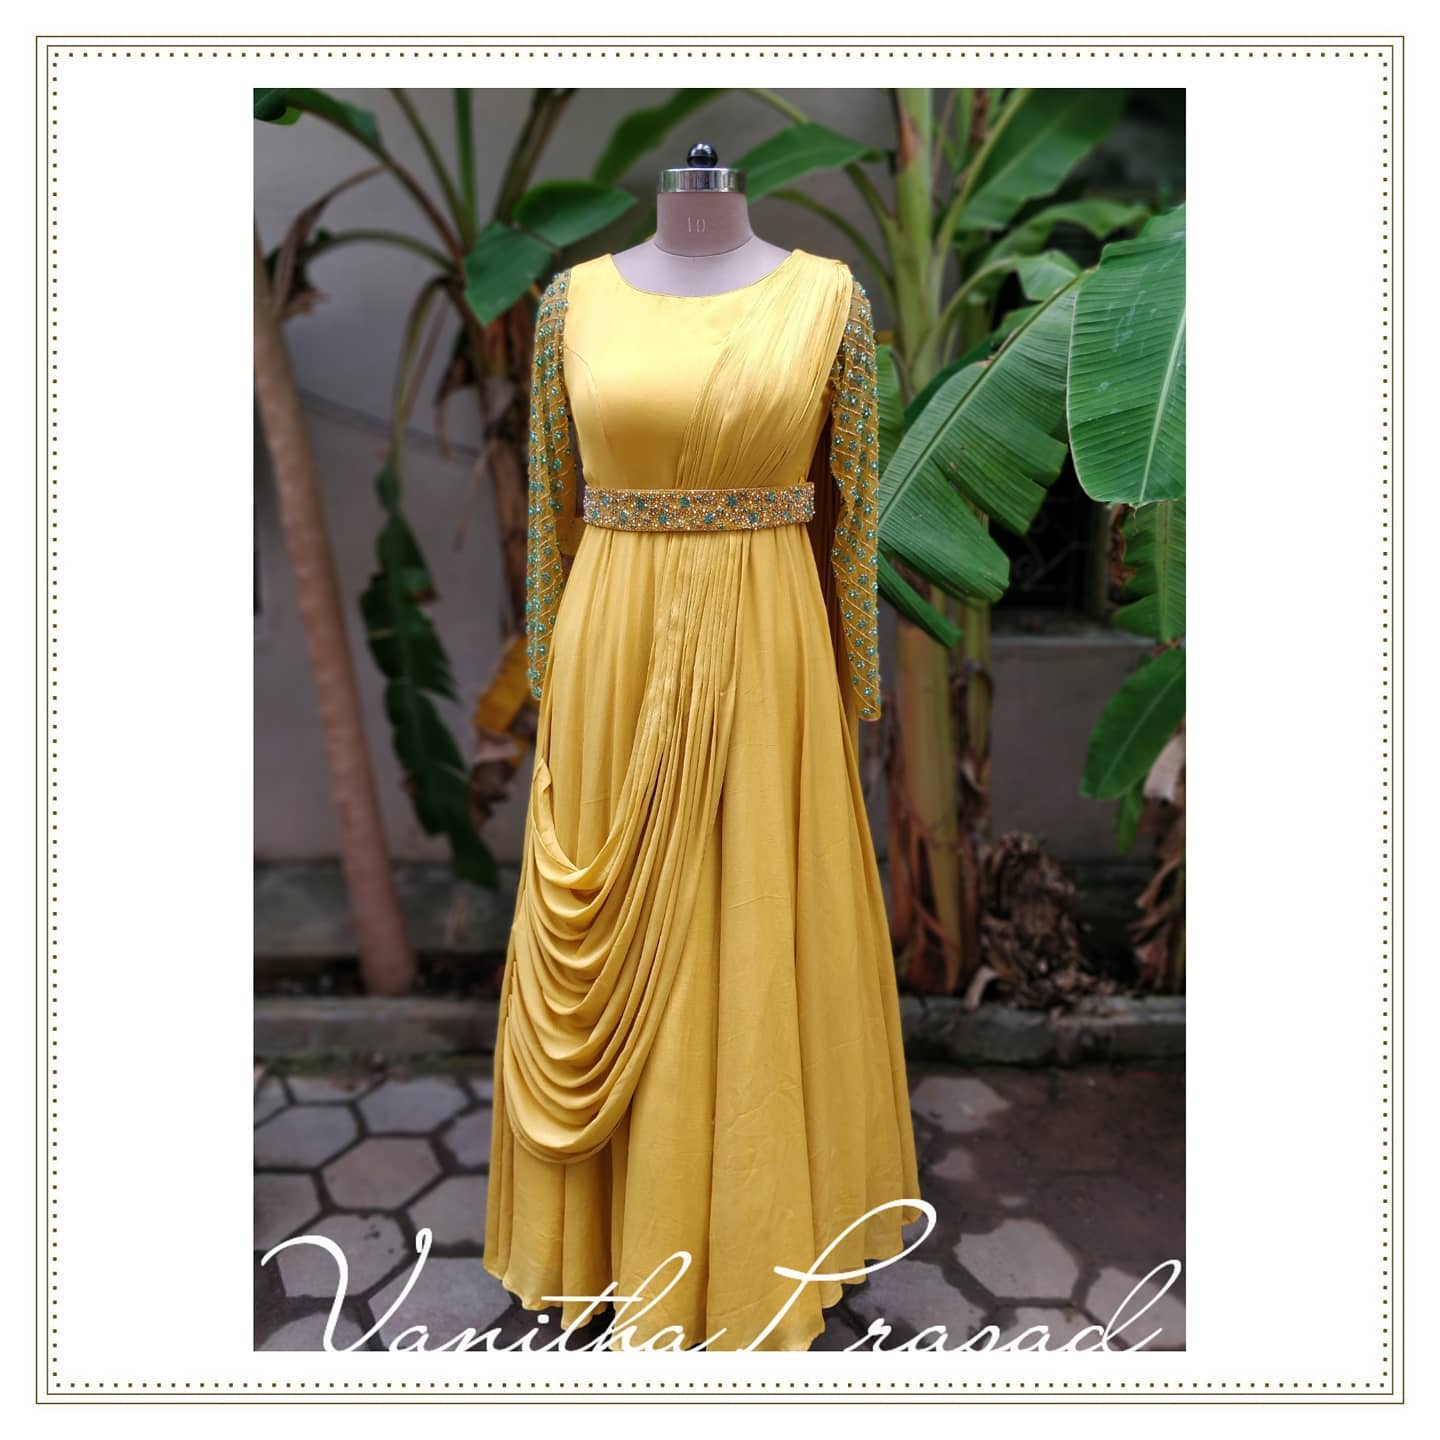 This season it's raining drape dresses in Vanitha couture studio. Beautiful yellow color pre draped floor length dress with embroidery waist belt.  2021-08-26